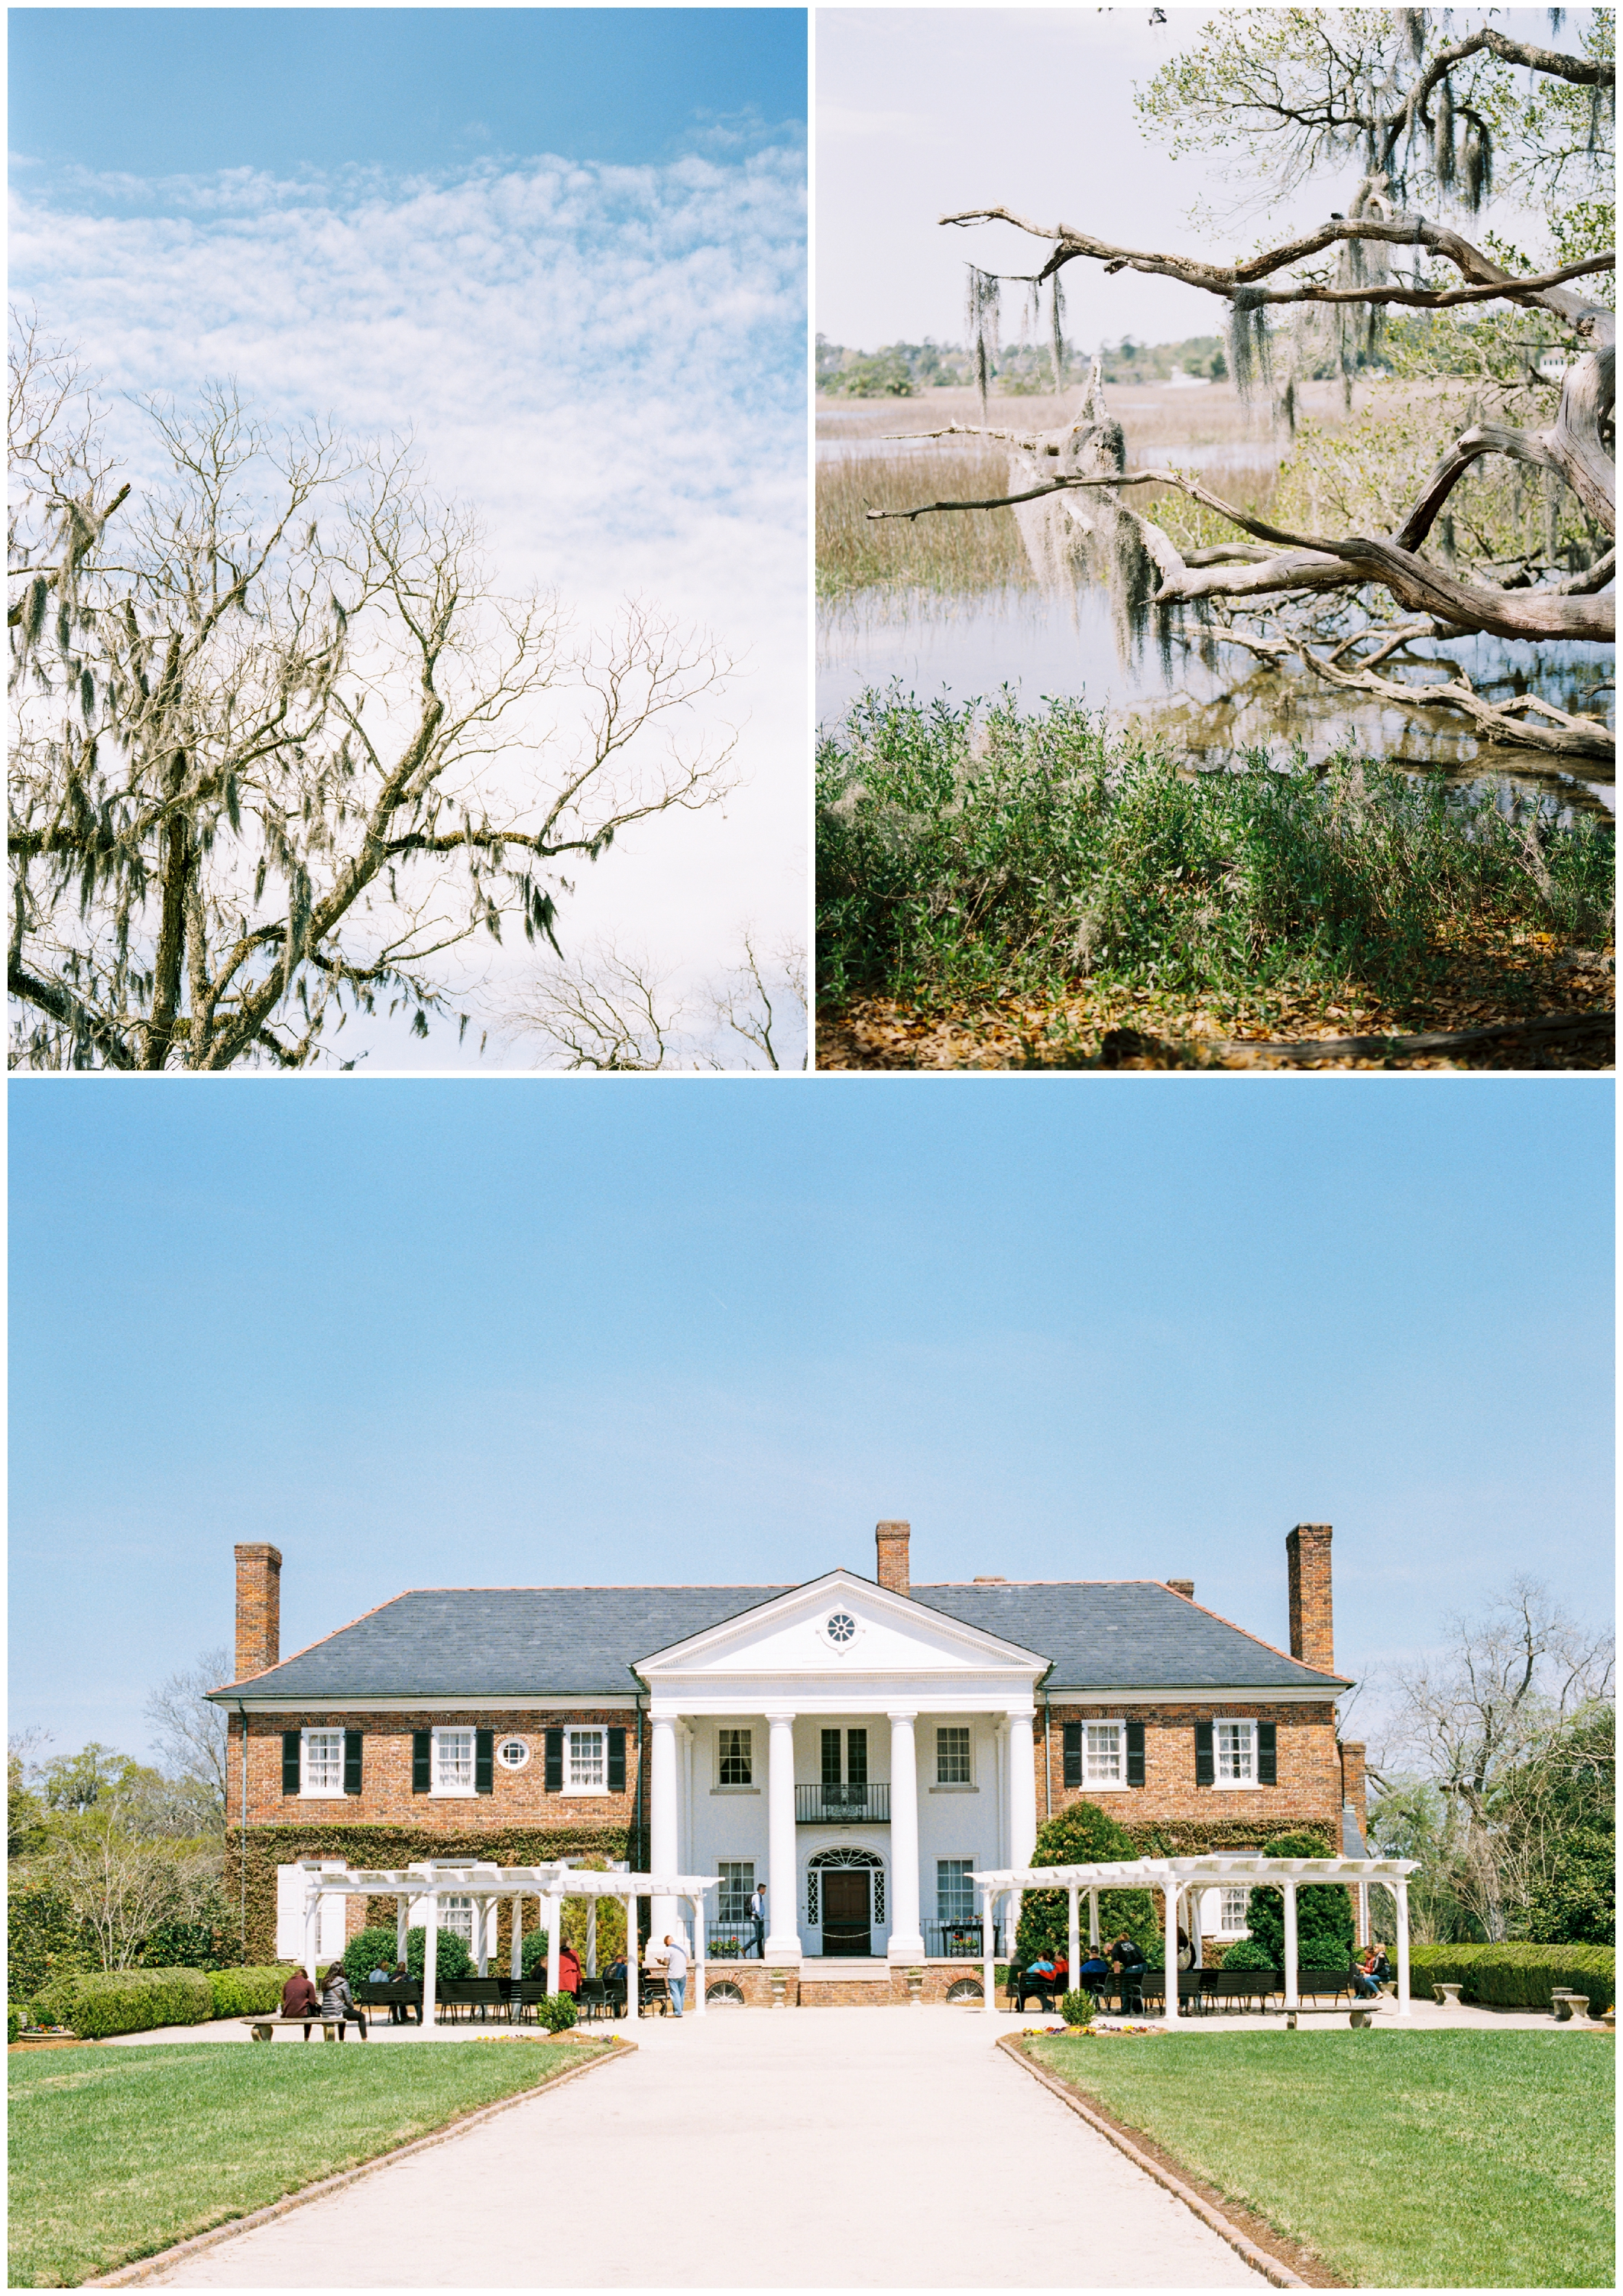 Boone Hall Plantation | Charleston, South Carolina